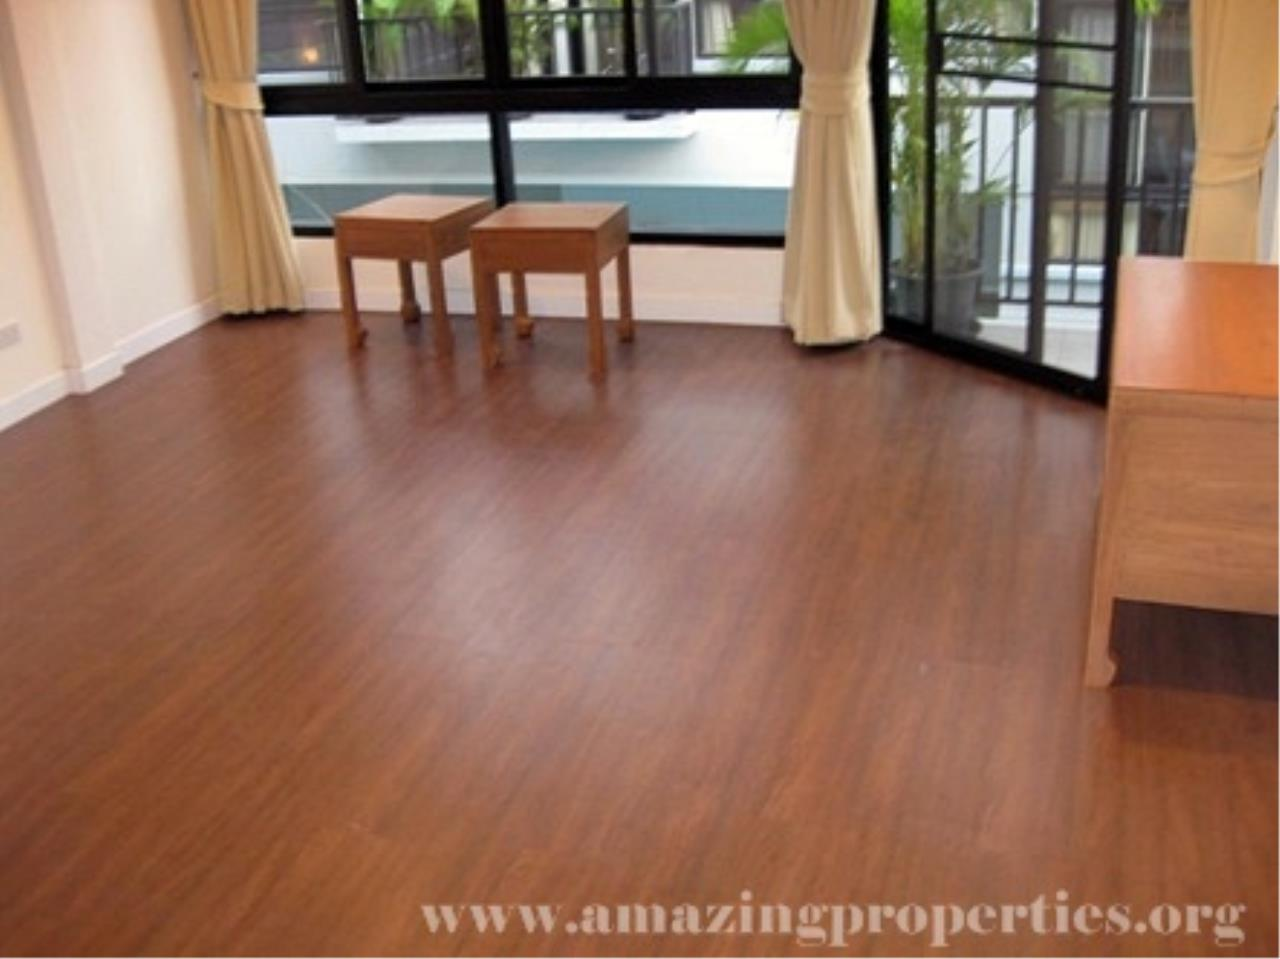 Amazing Properties Agency's 3 bedrooms Town House for rent 9